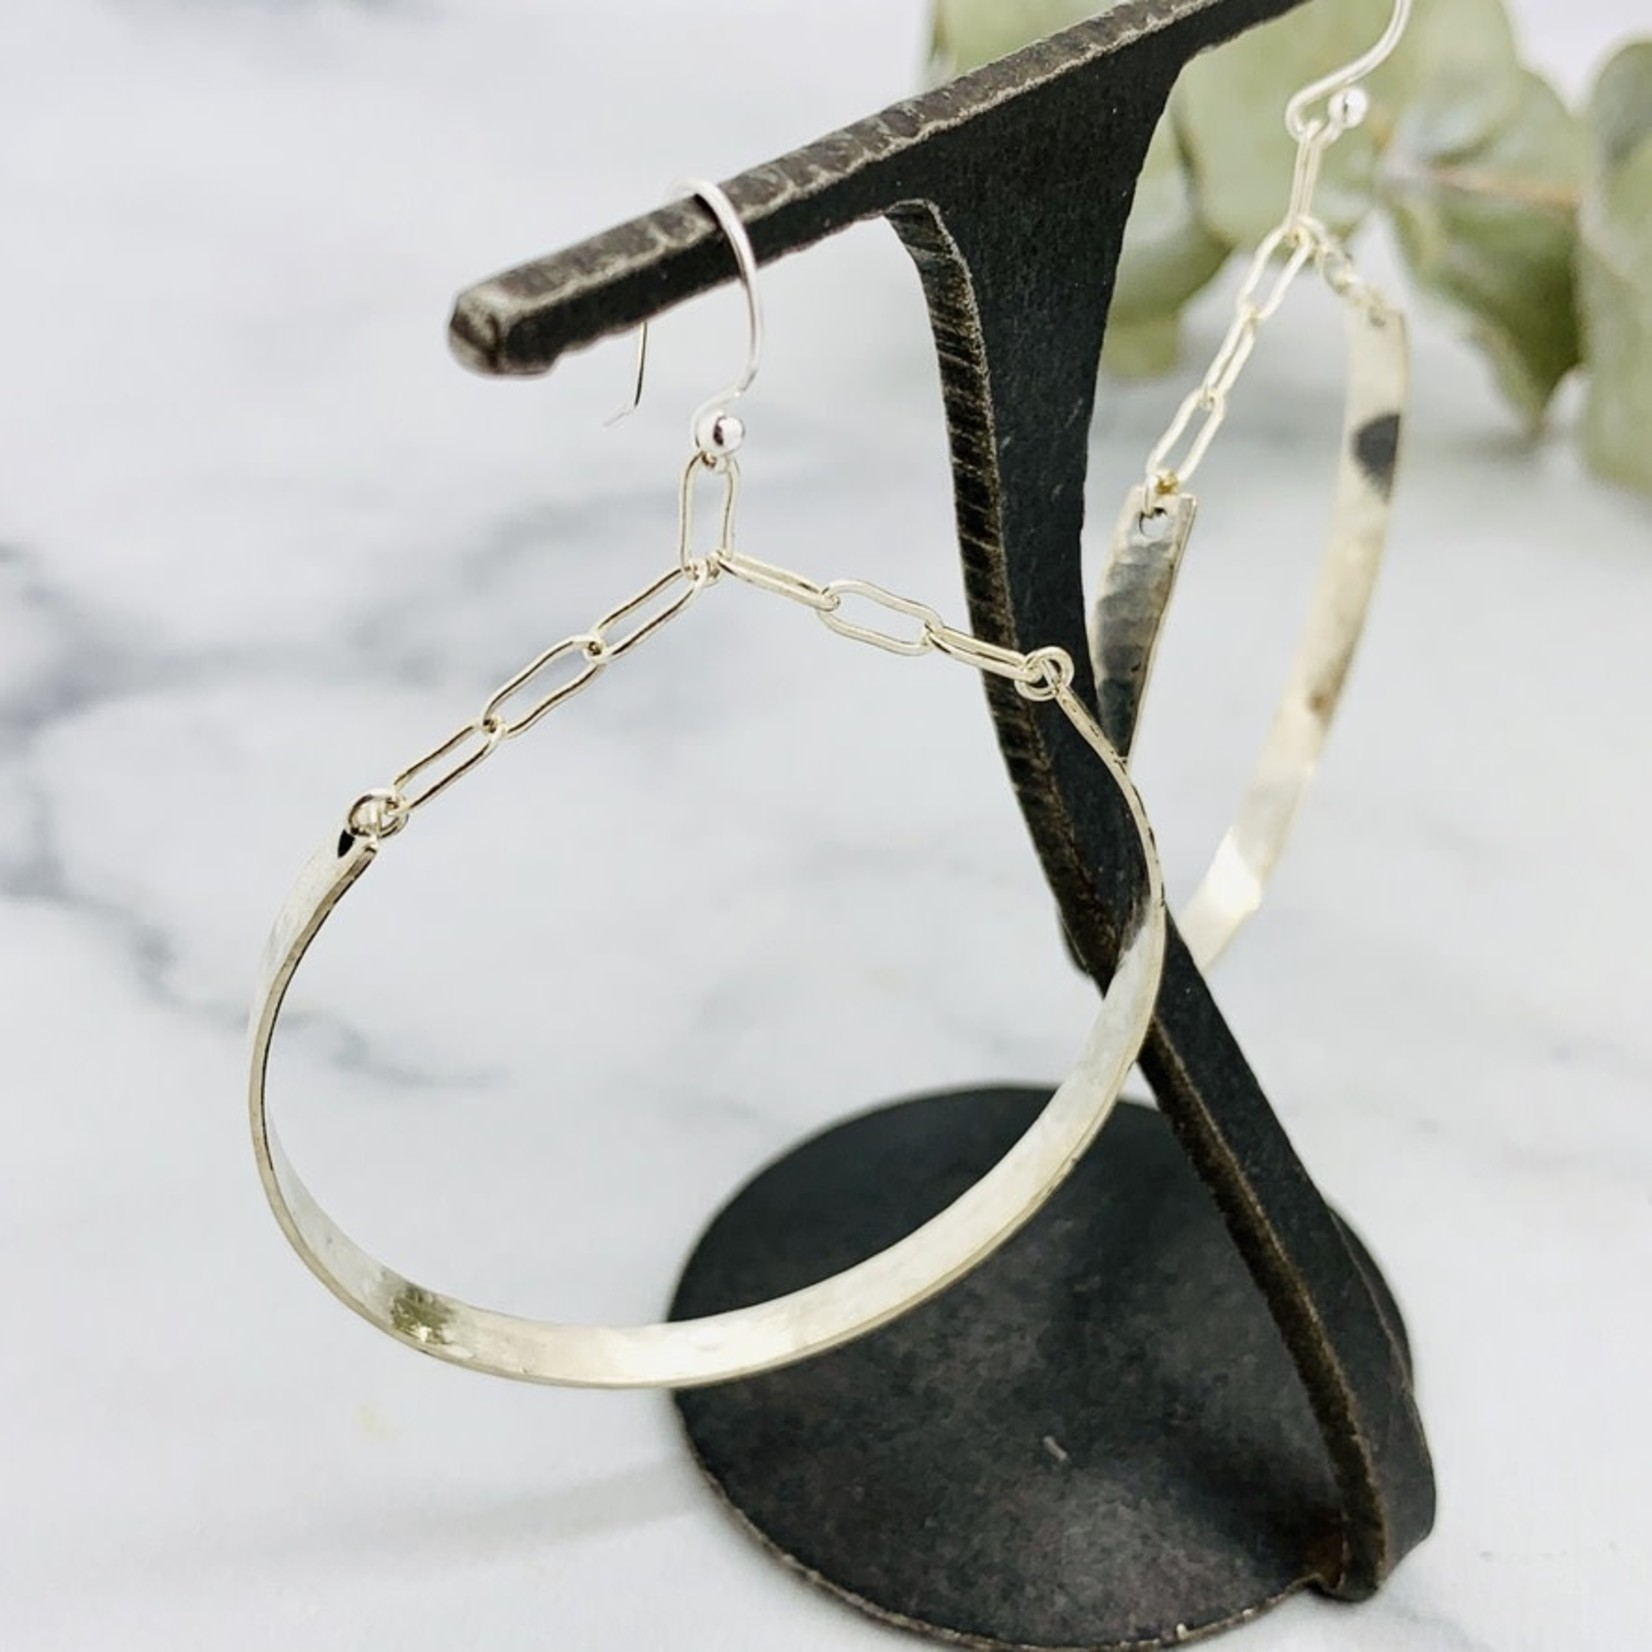 Handmade earrings with large hoop, hammered, french earwire